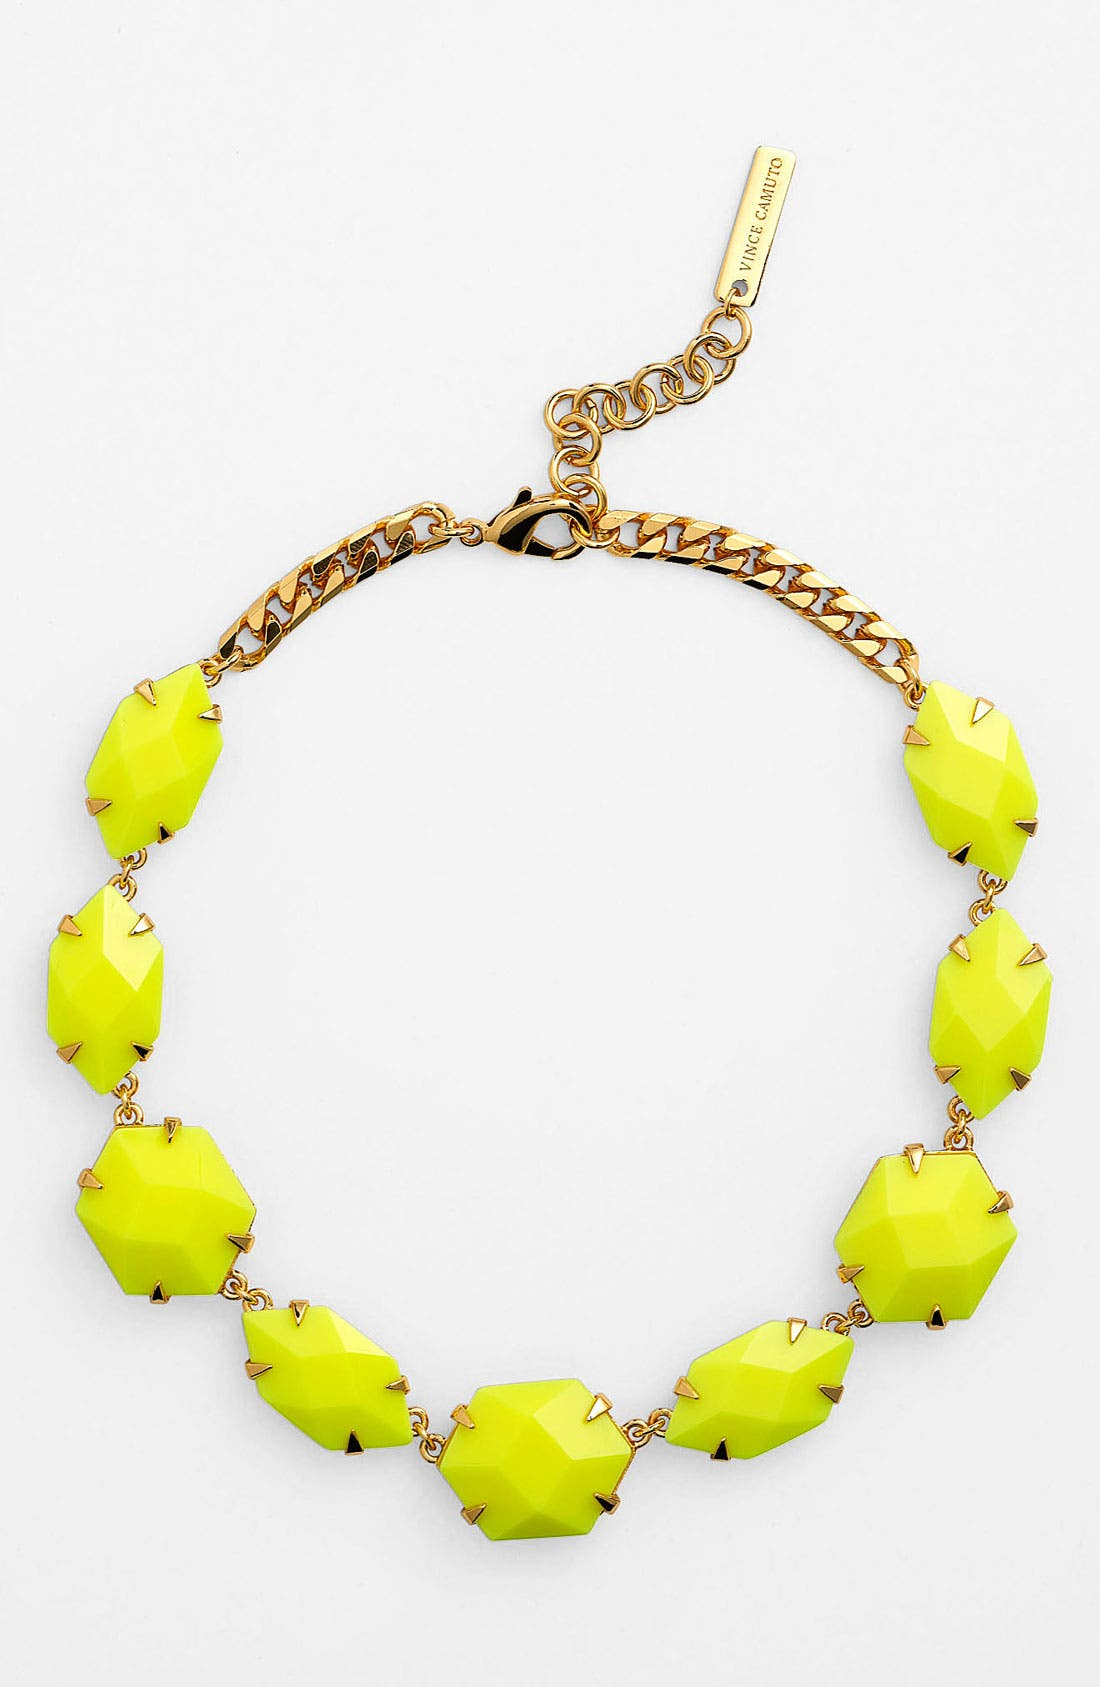 Main Image - Vince Camuto 'Bright Gems' Faceted Resin Collar Necklace